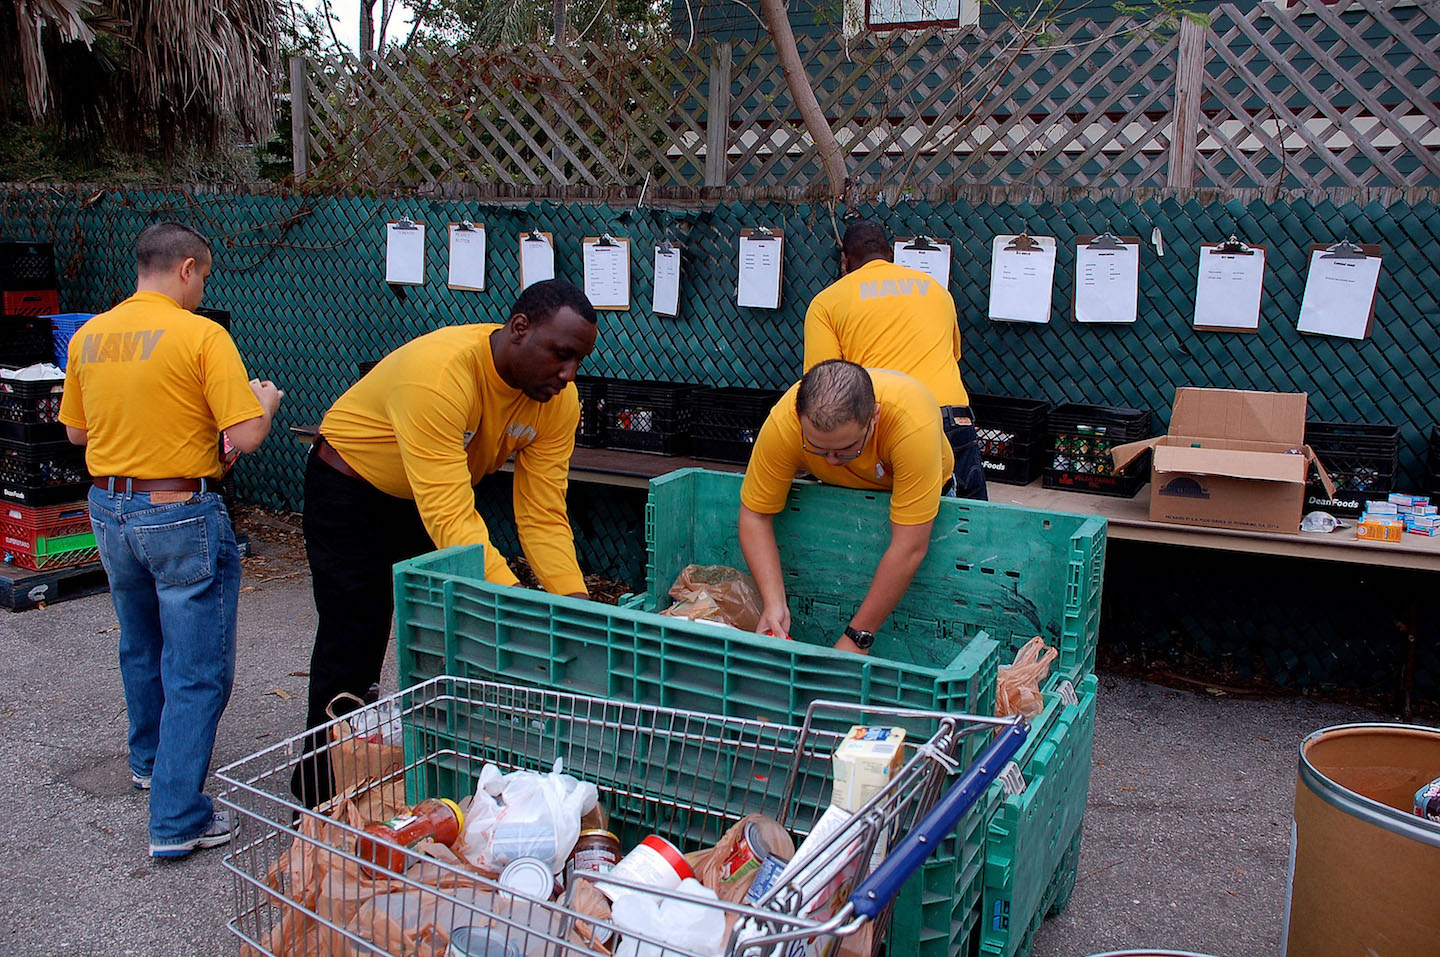 Image: Charity forced to destroy annual food donation for 3,000 homeless people